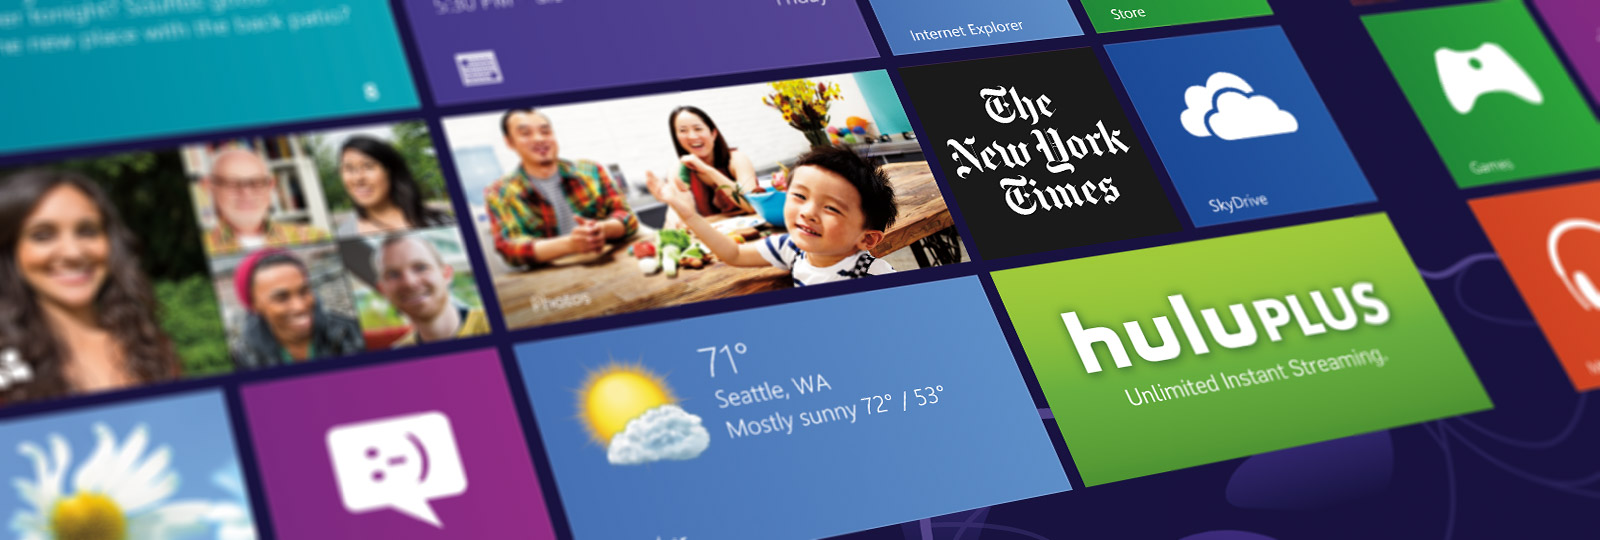 Upgrade to Windows 8 Pro for $39.99 ERP and get great app offers.